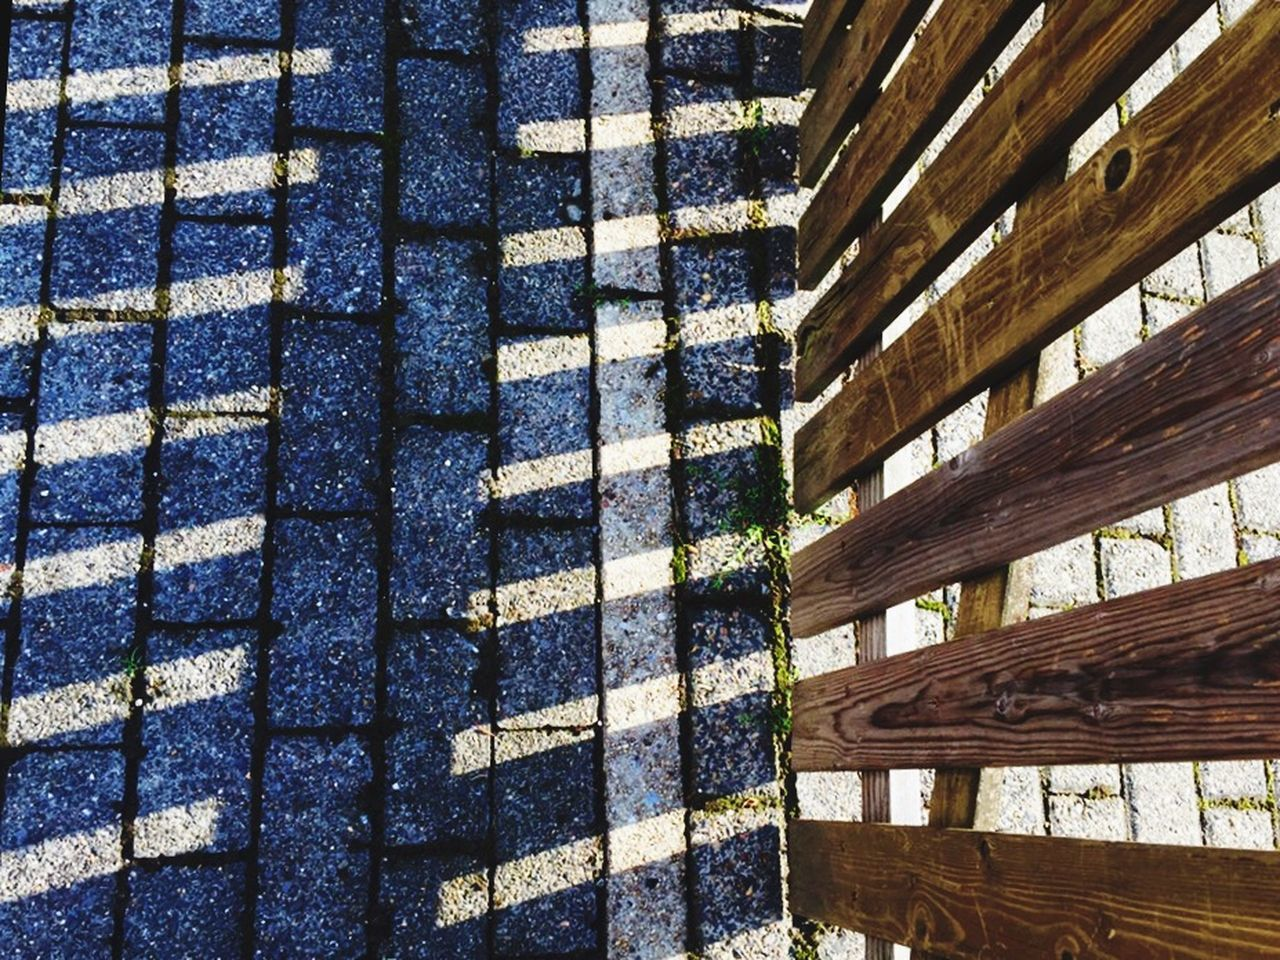 full frame, pattern, backgrounds, day, no people, close-up, outdoors, nature